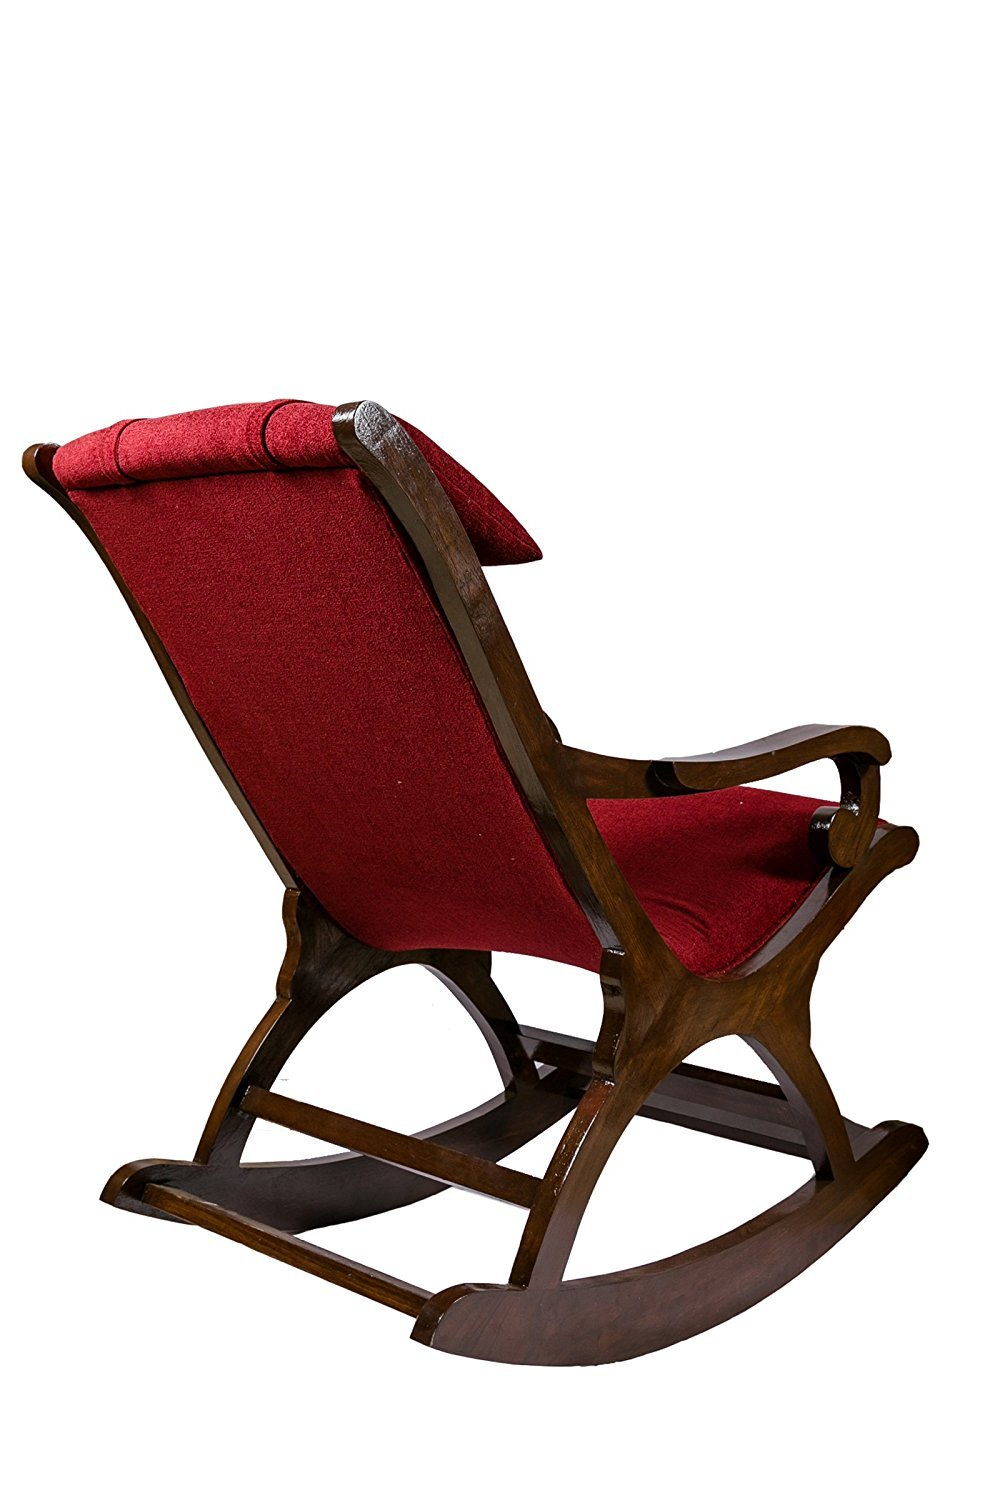 Billaiy Rocking Chair Teak Wood Rocking Chair Wooden Rocking Chair for Living Room Home Decor